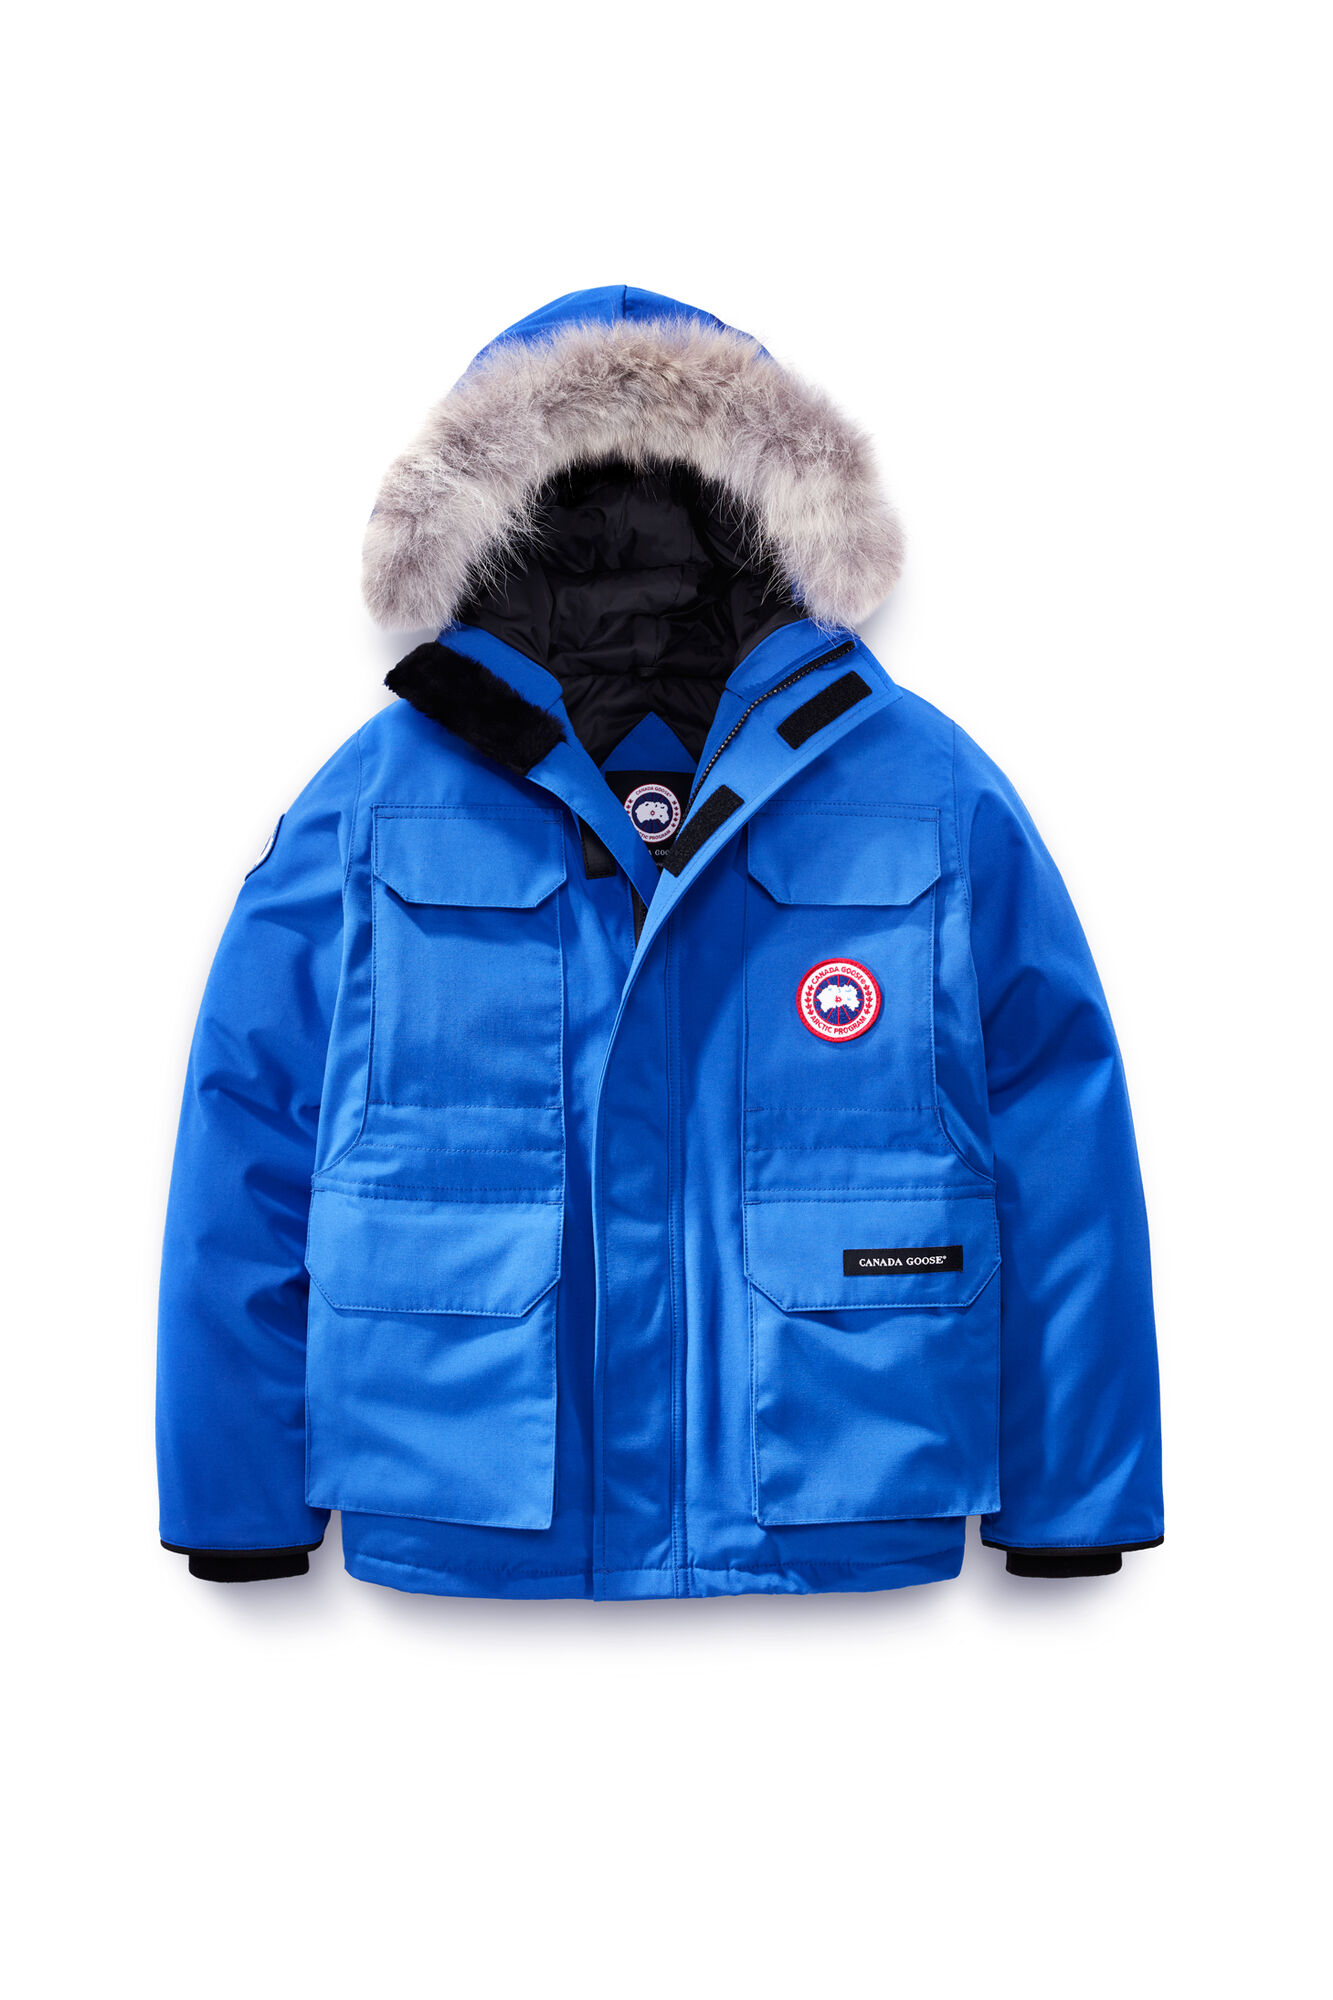 Canada Goose mens replica price - Youth Outerwear | Parkas Pants Gloves | Canada Goose?